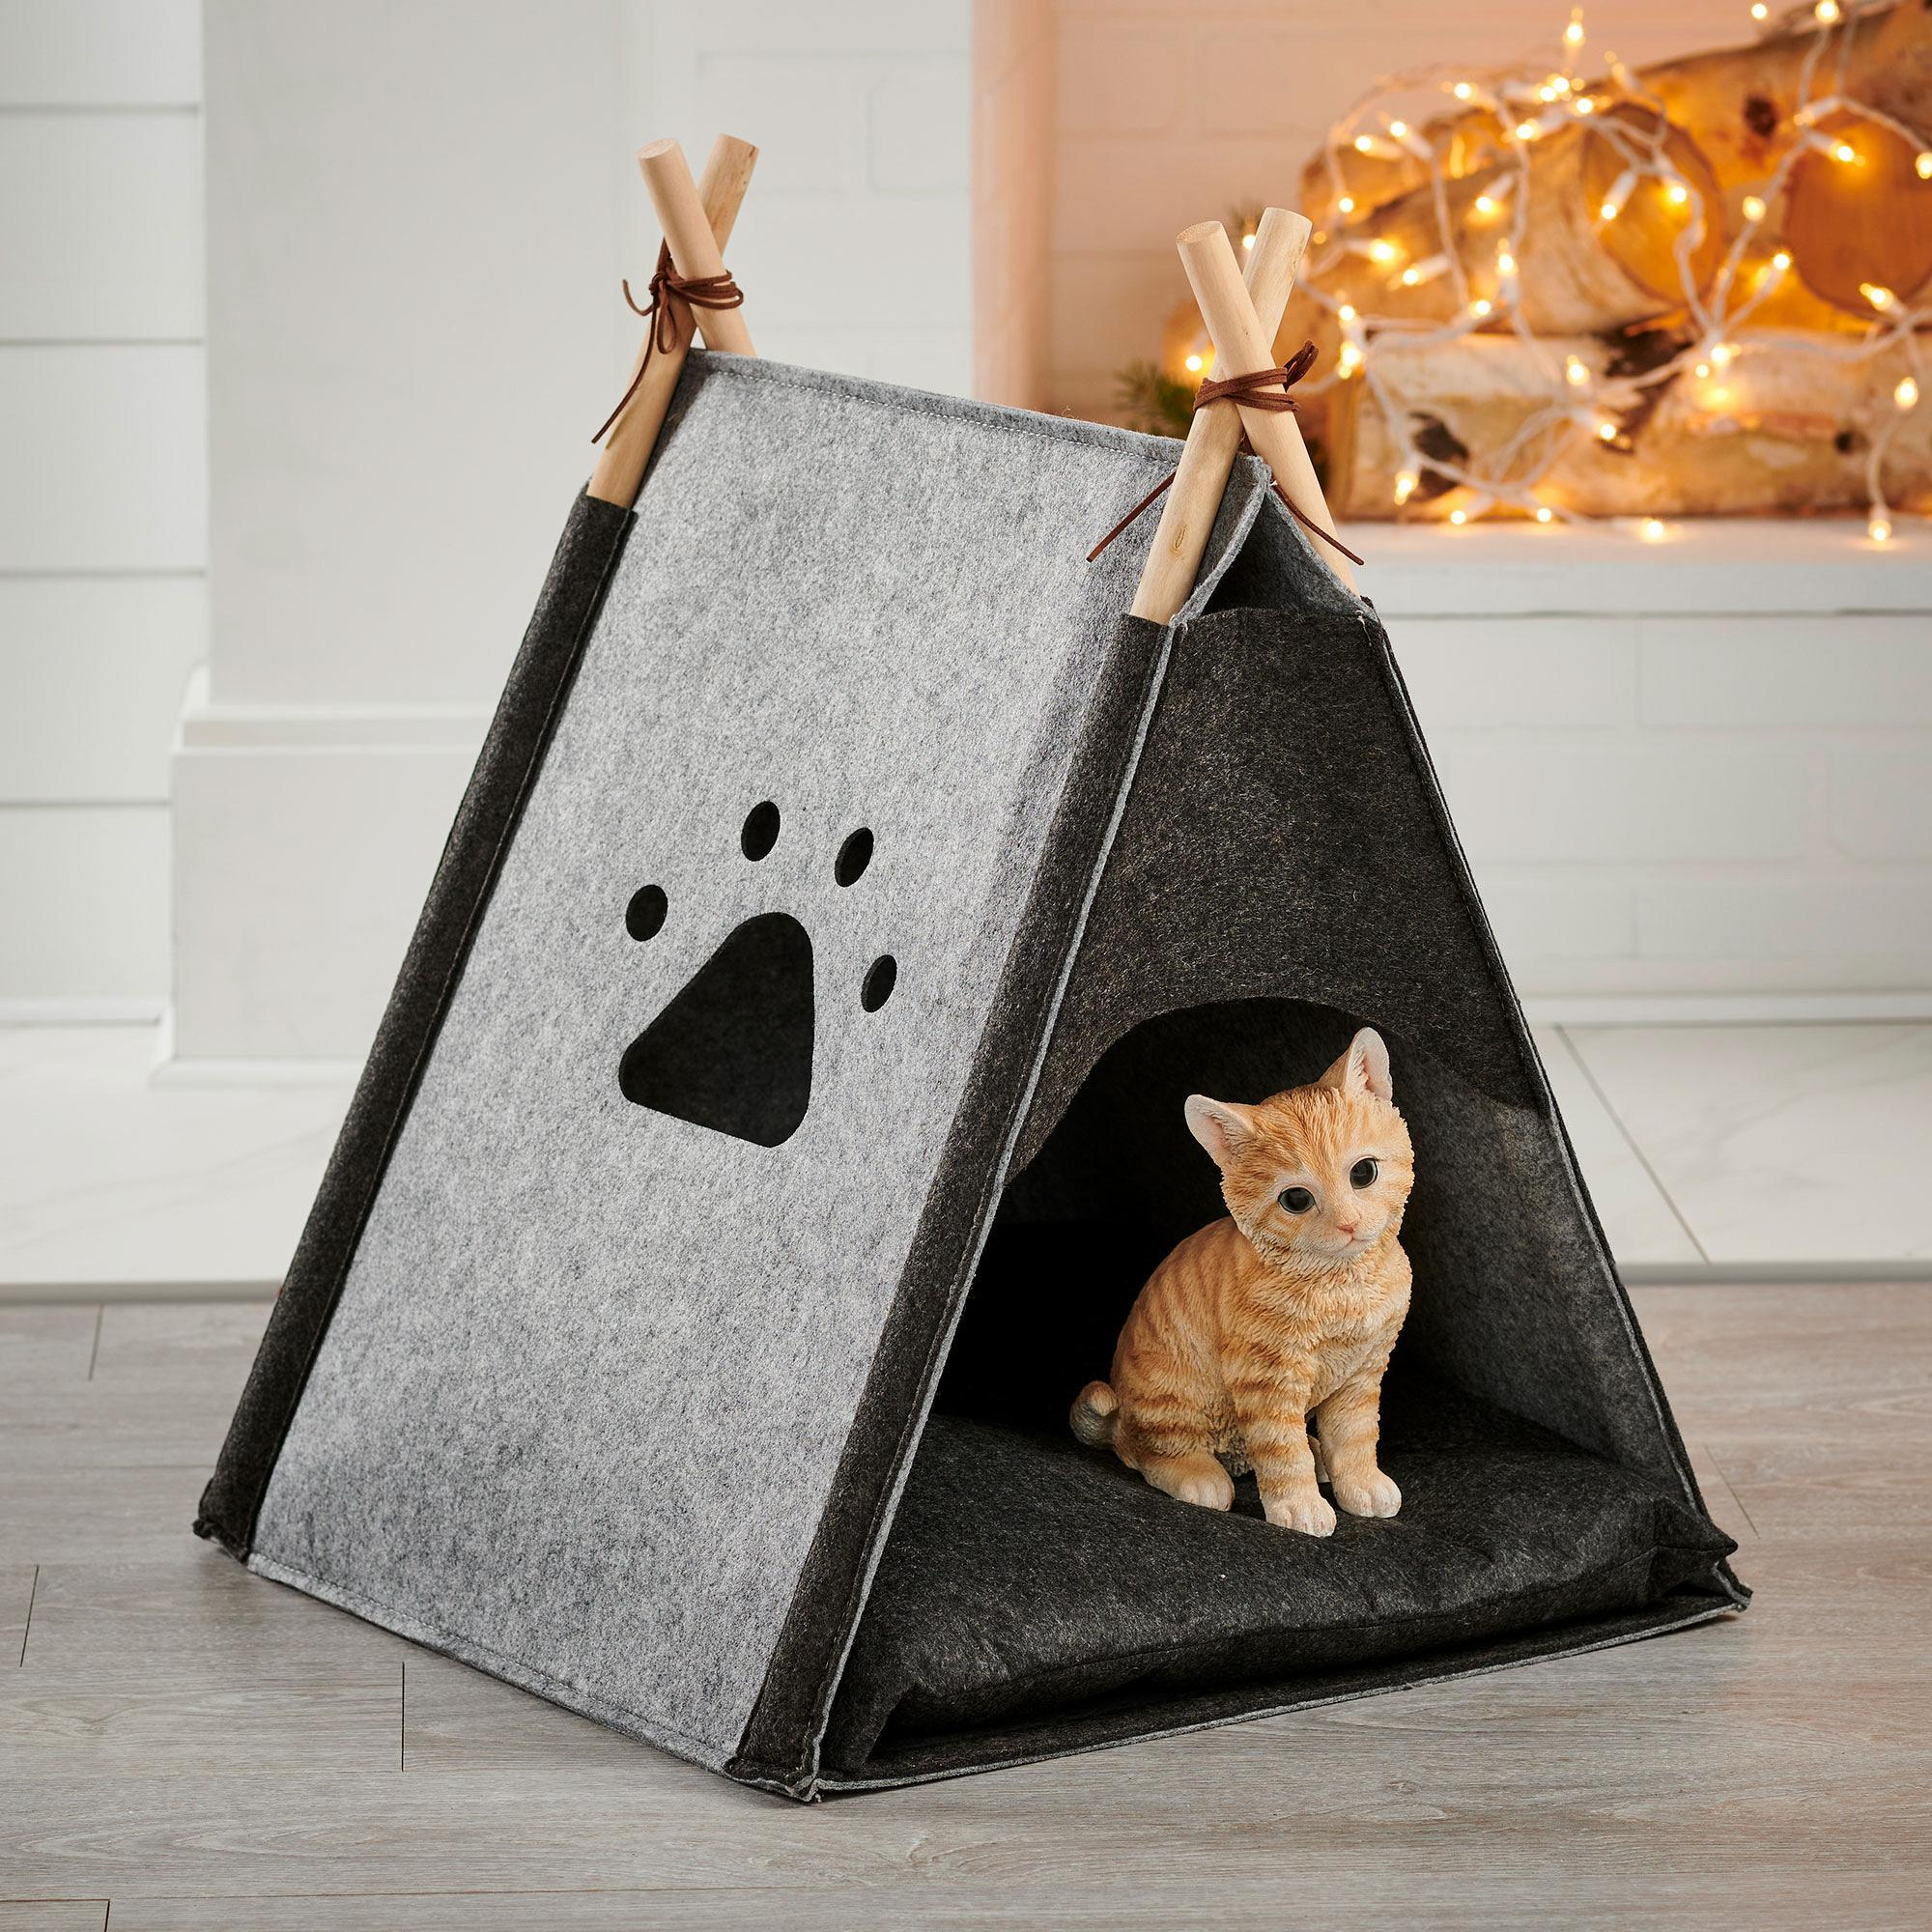 Felt Cat Tent Pet Bed